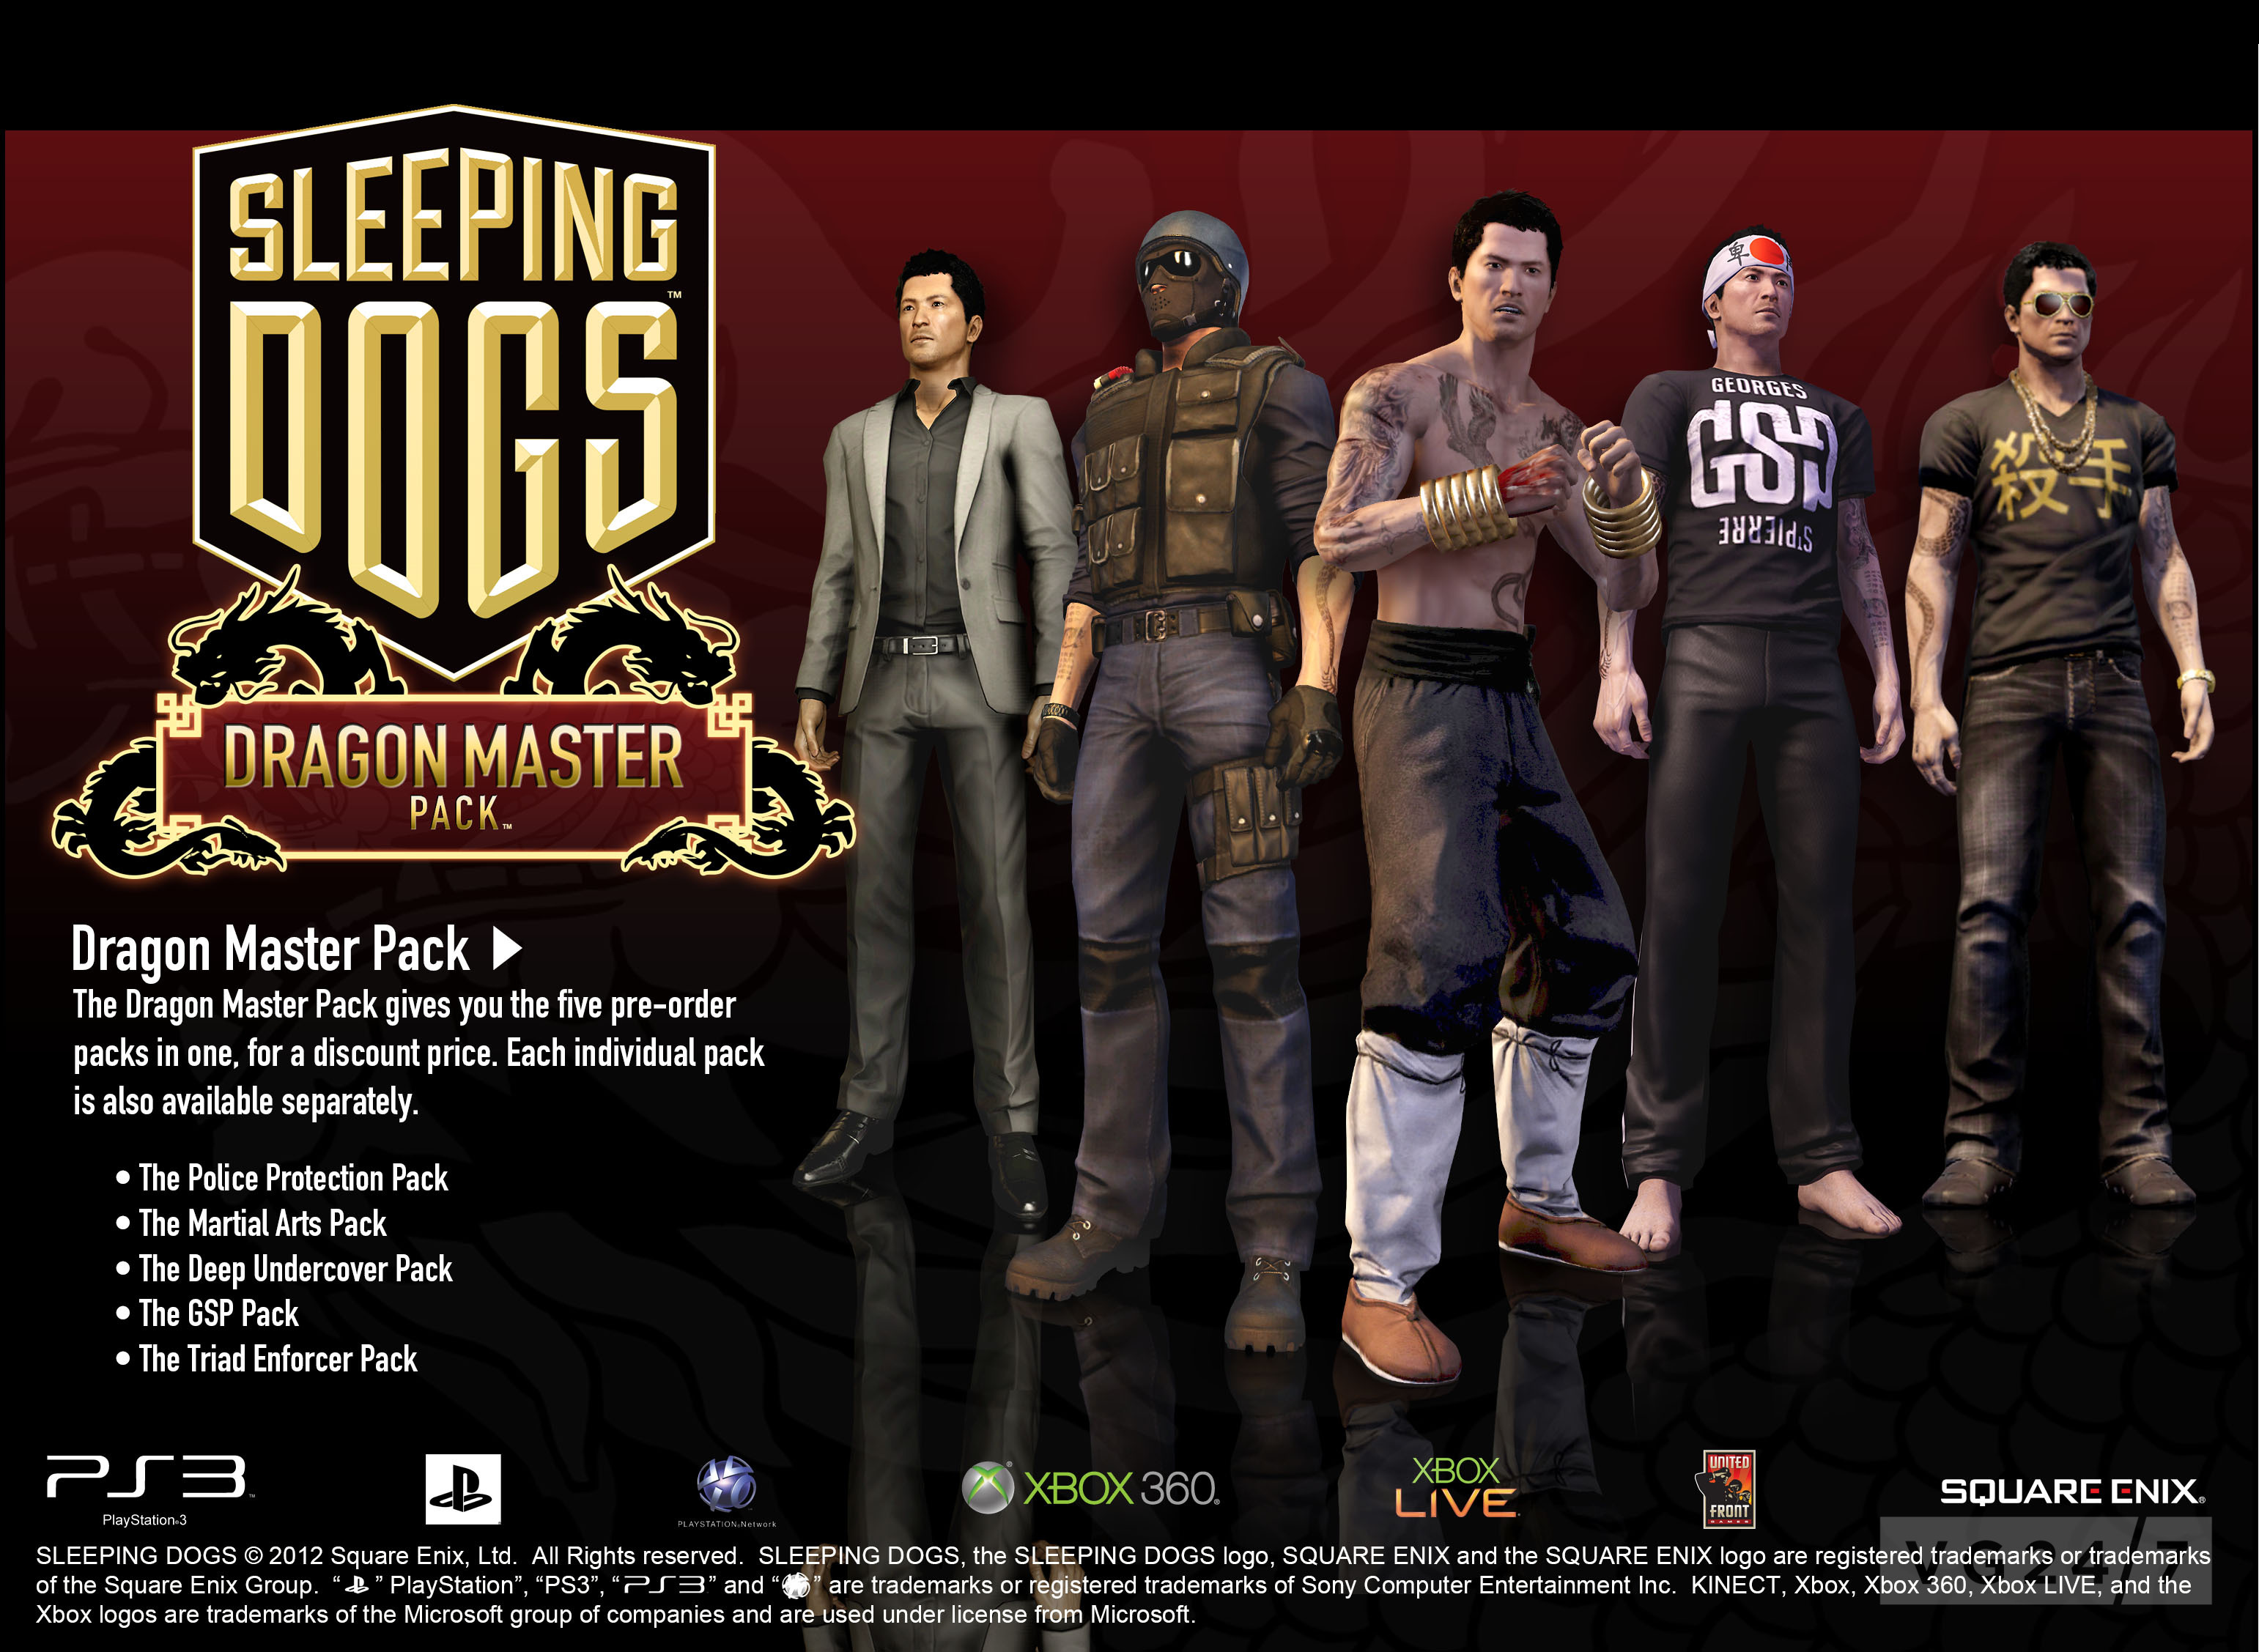 sleeping dogs dating dlc Online shopping for import video games, digital codes, itunes cards, mobage & psn cards, movies, music, electronics, computers, software, books, apparel, personal care, toys & more.